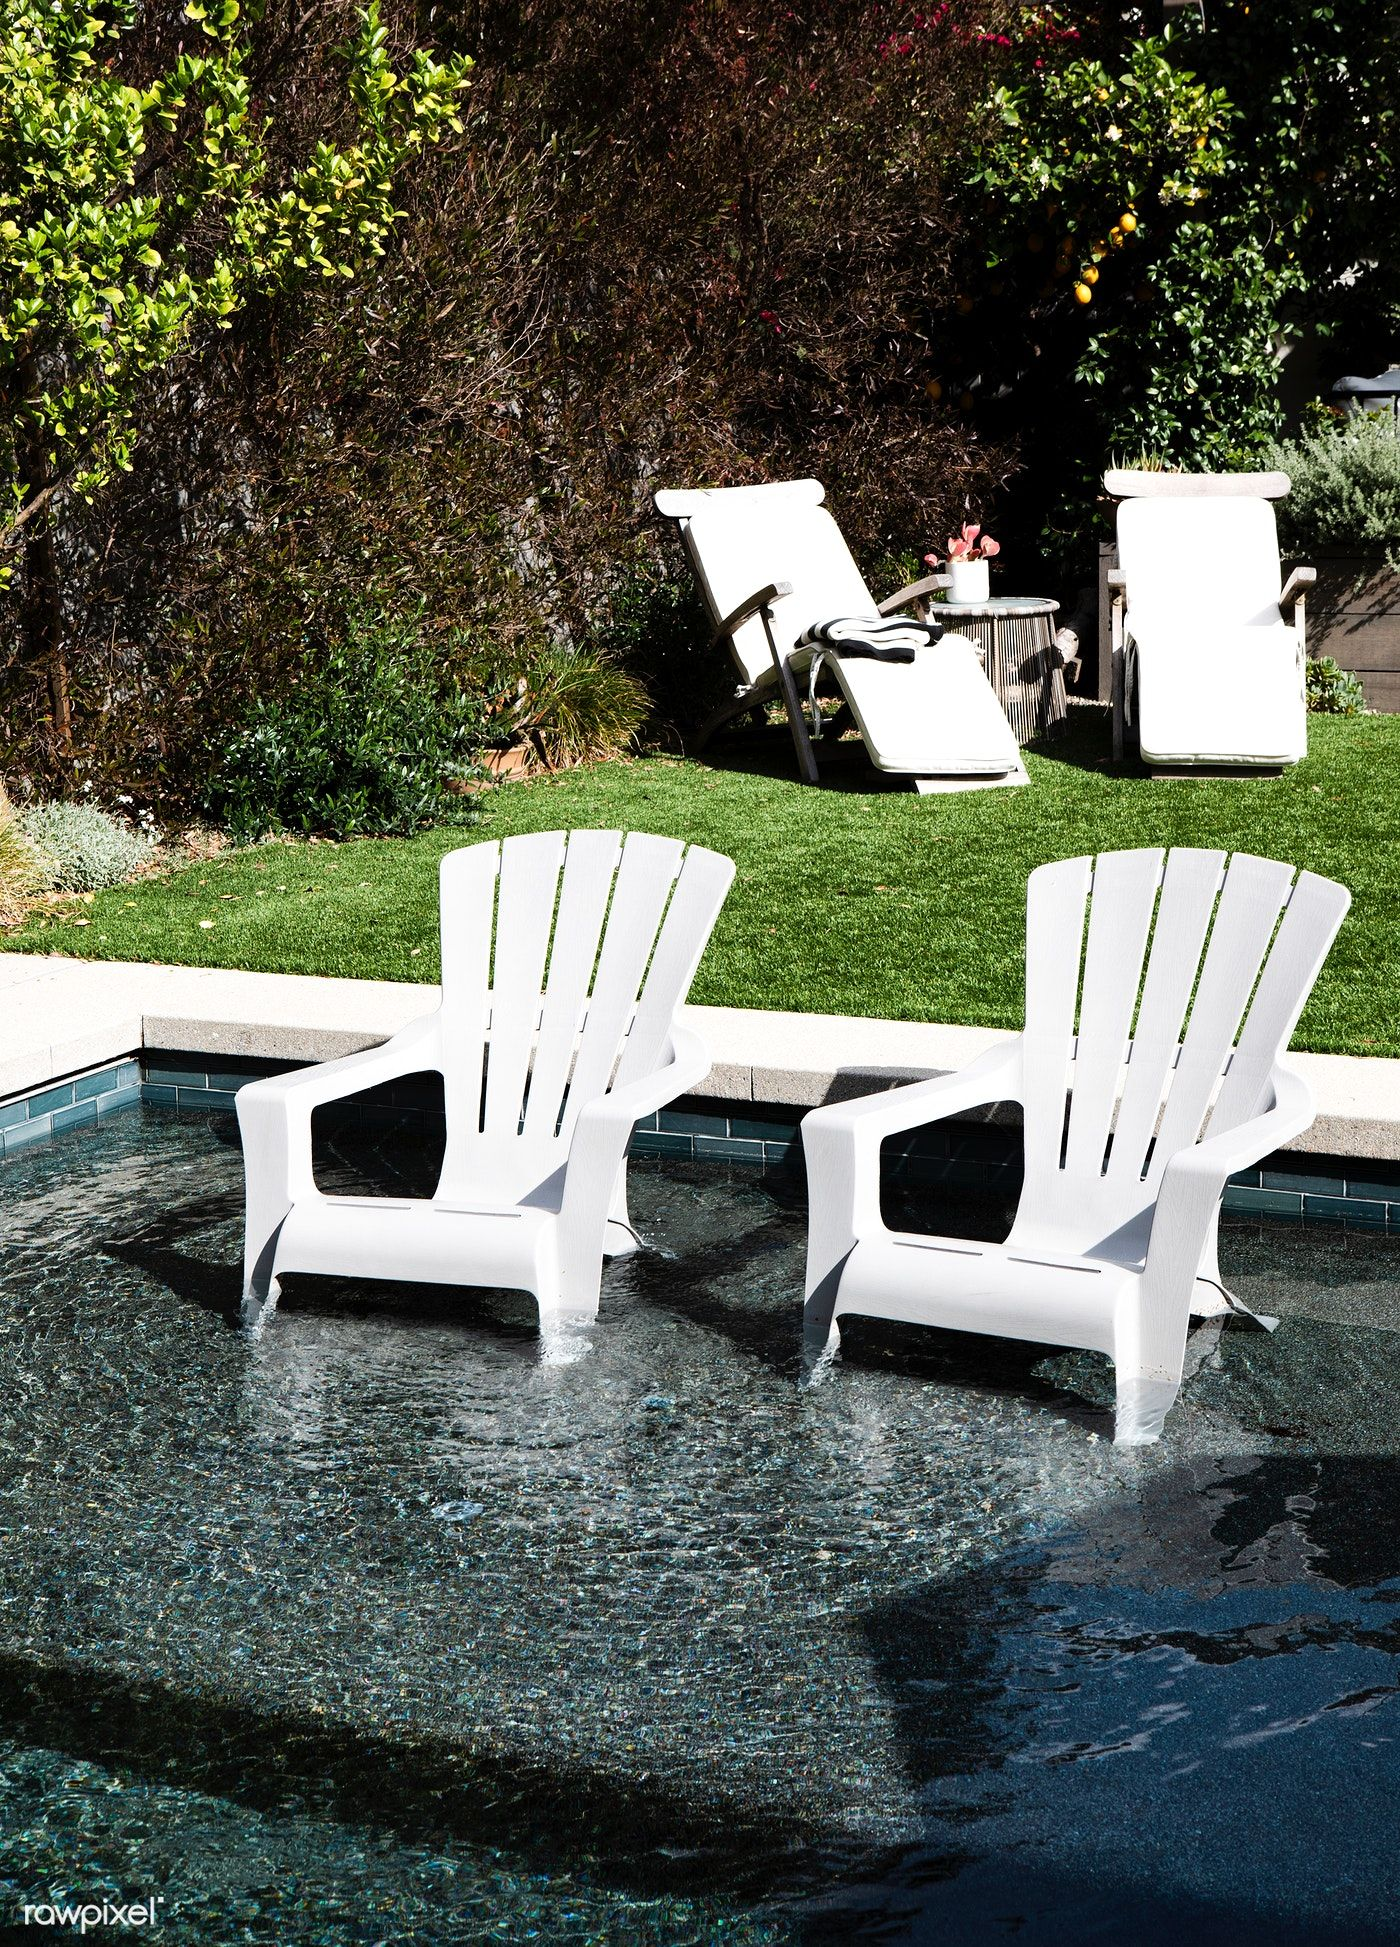 White Plastic Chairs In A Pool Free Image By Rawpixel Com Mckinsey Photography Photos White Plastic Chairs Plastic Chair Chair Photography